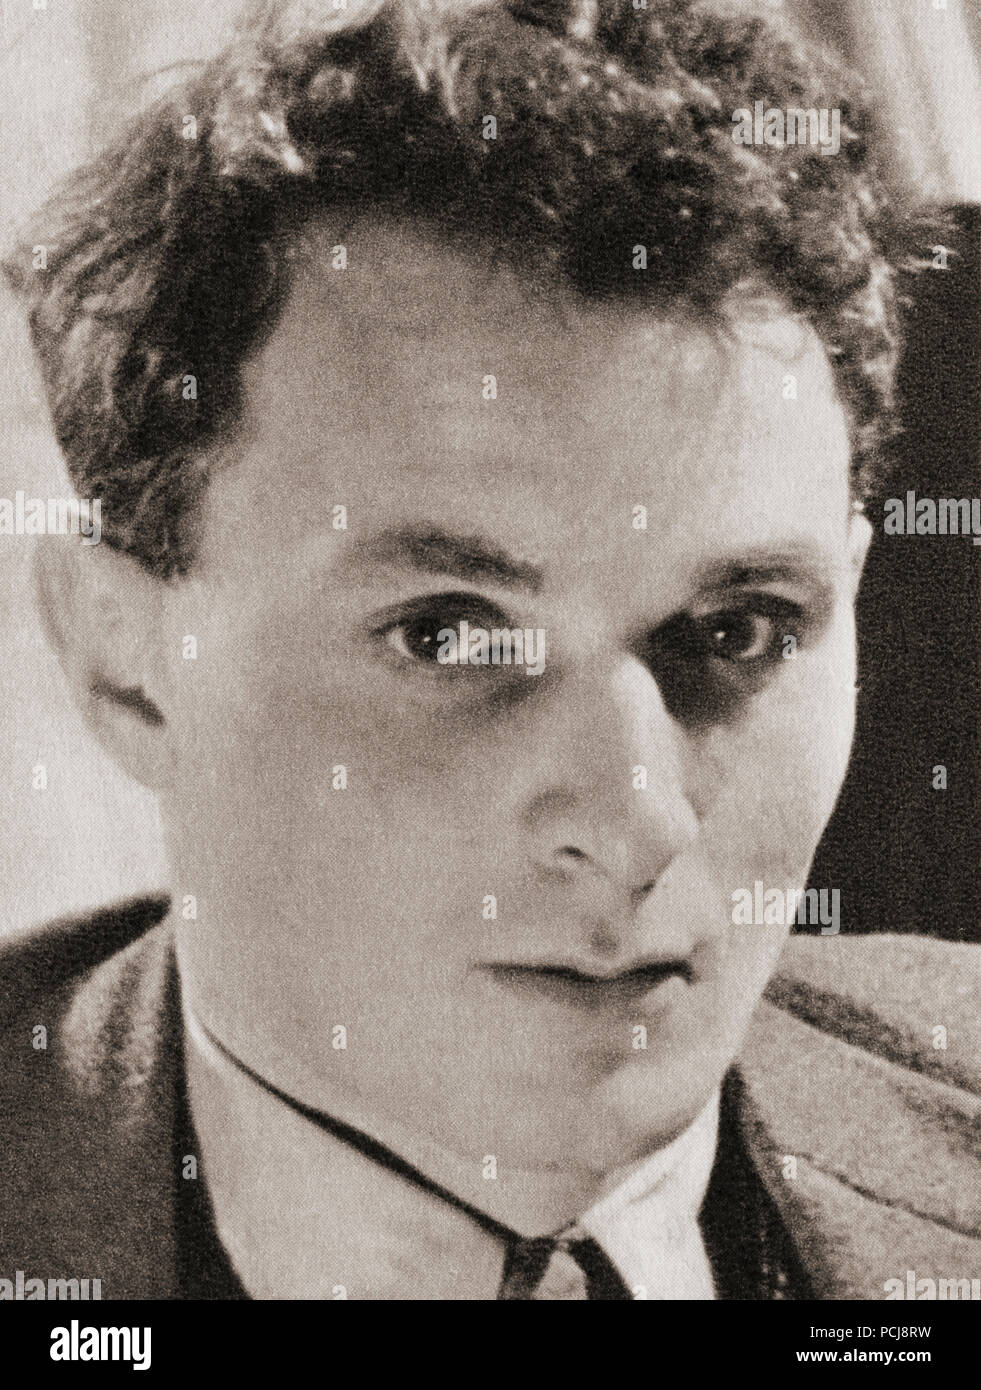 Sir Stephen Harold Spender, 1909 – 1995.  English poet, novelist, and essayist.  After a contemporary print. - Stock Image